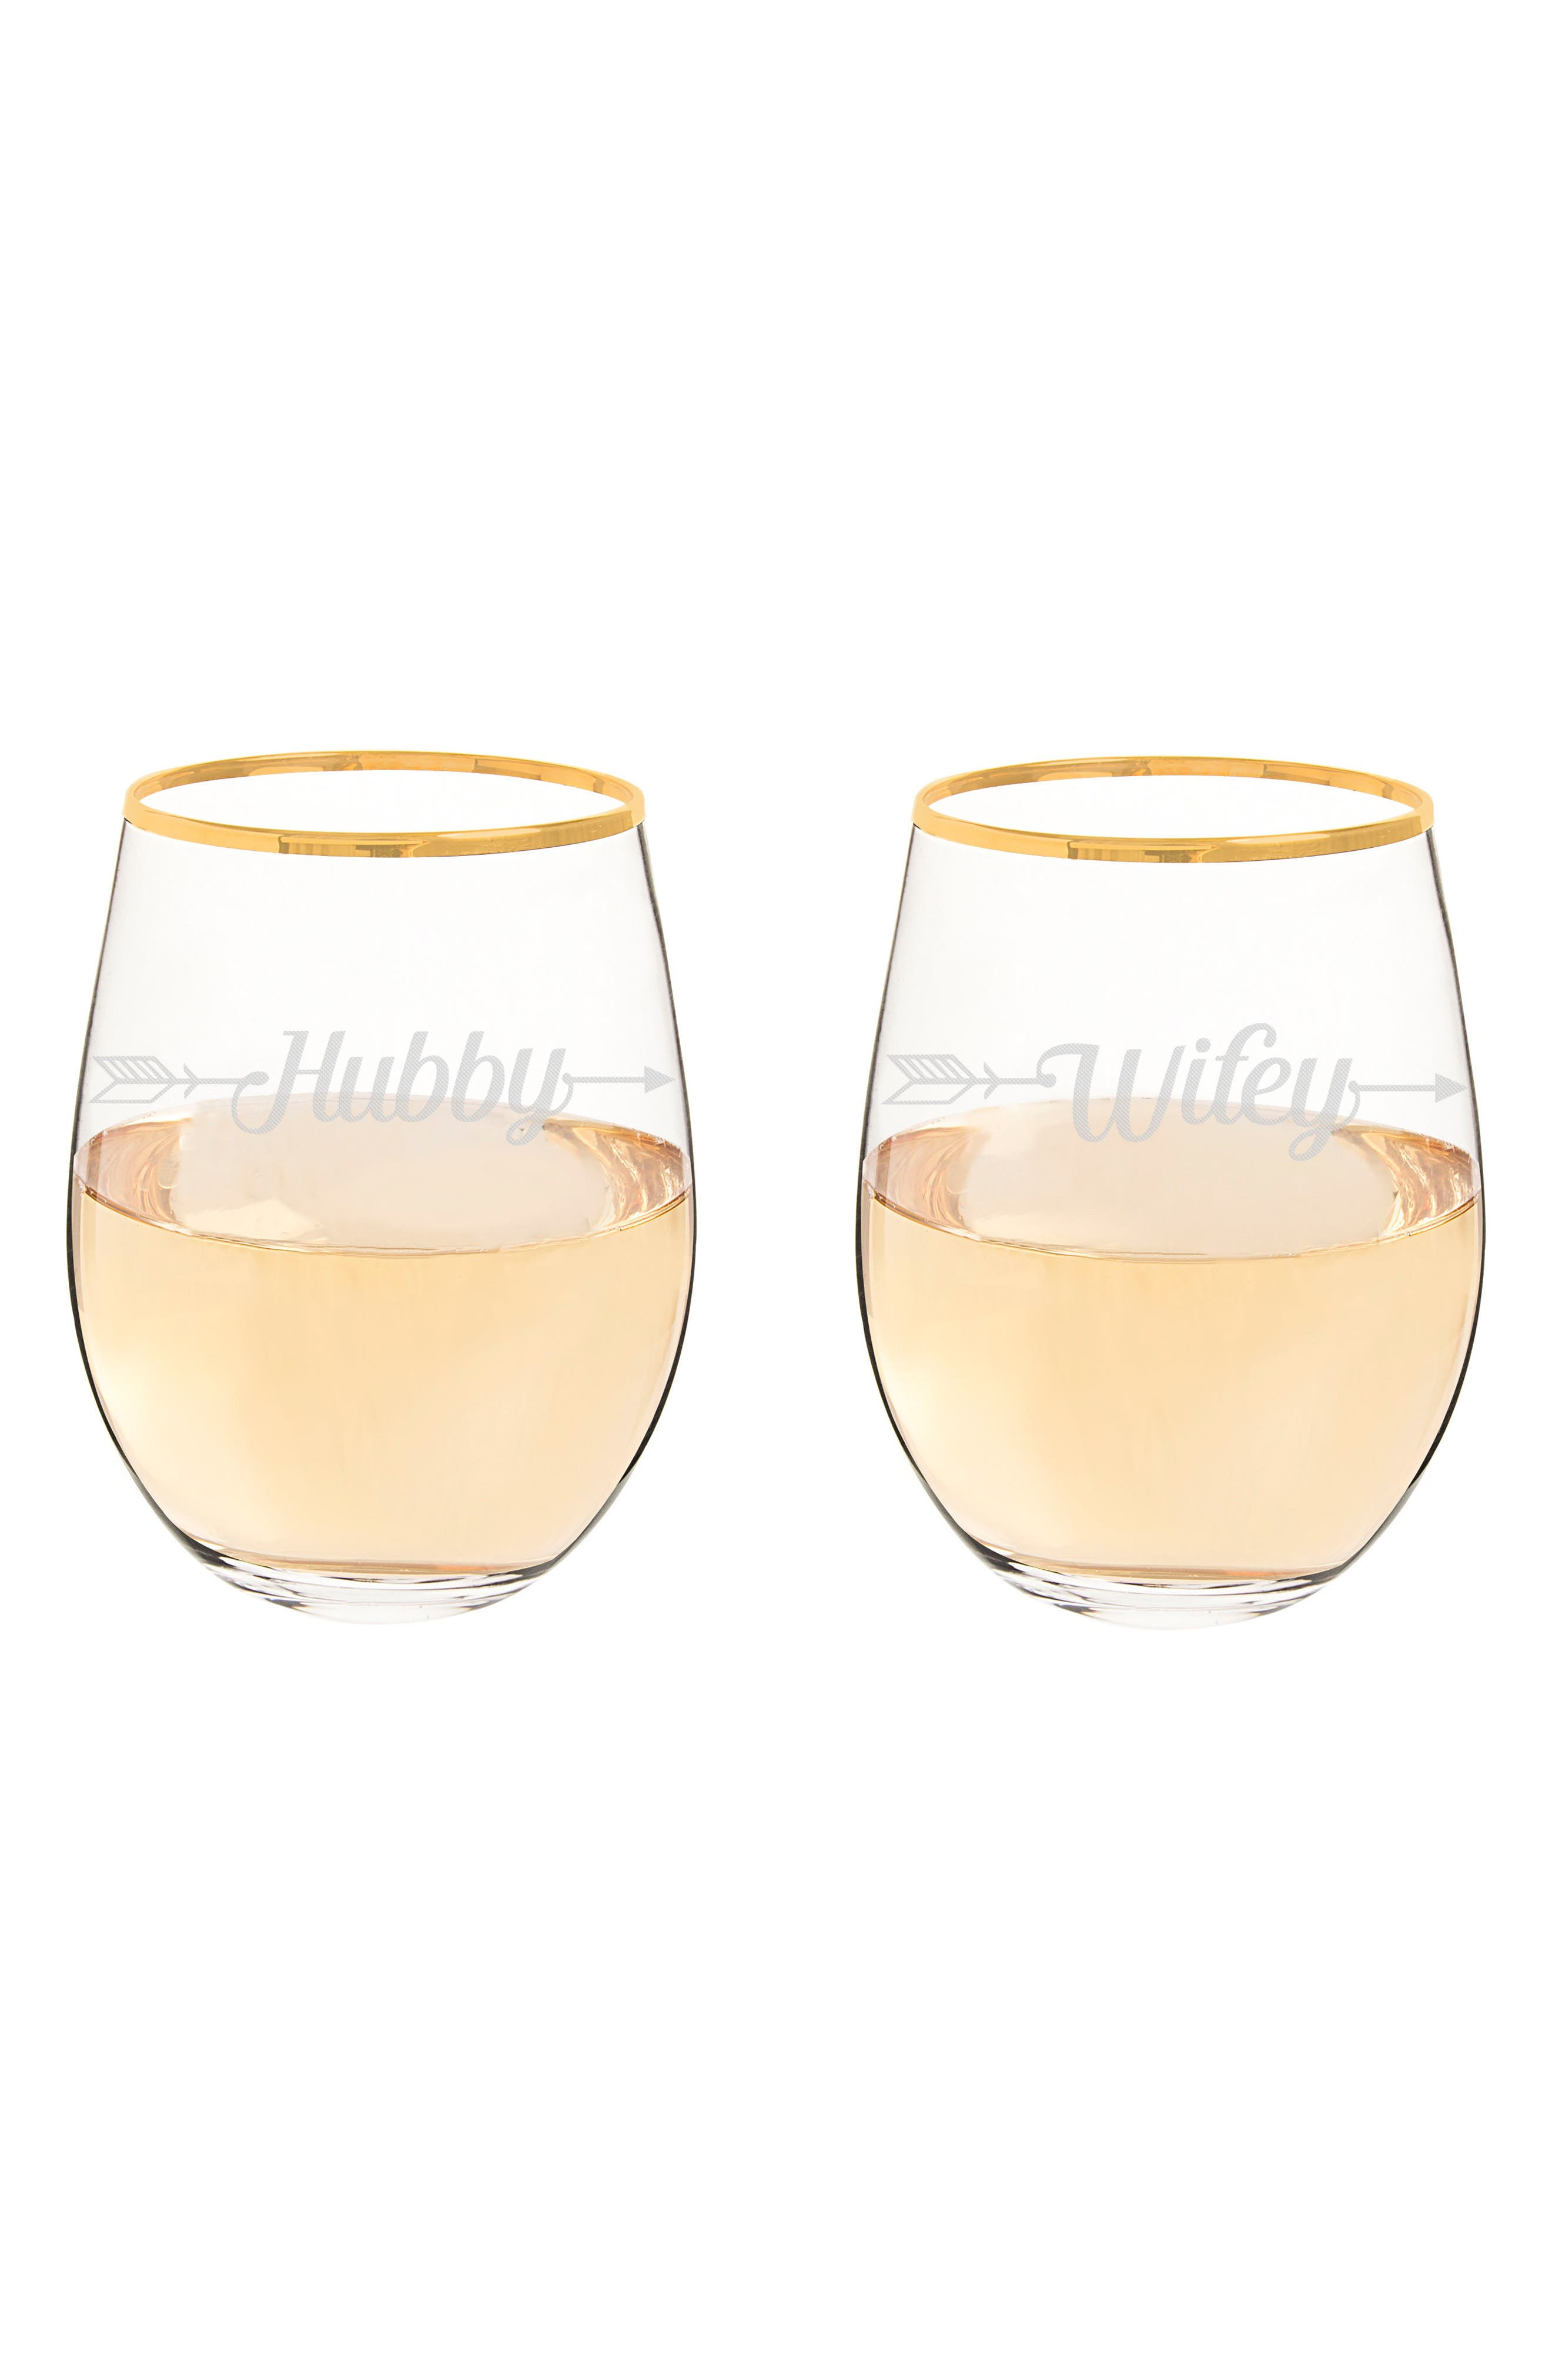 Hubby/Wifey Set of 2 Gold Rimmed Stemless Wine Glasses,                             Alternate thumbnail 2, color,                             710